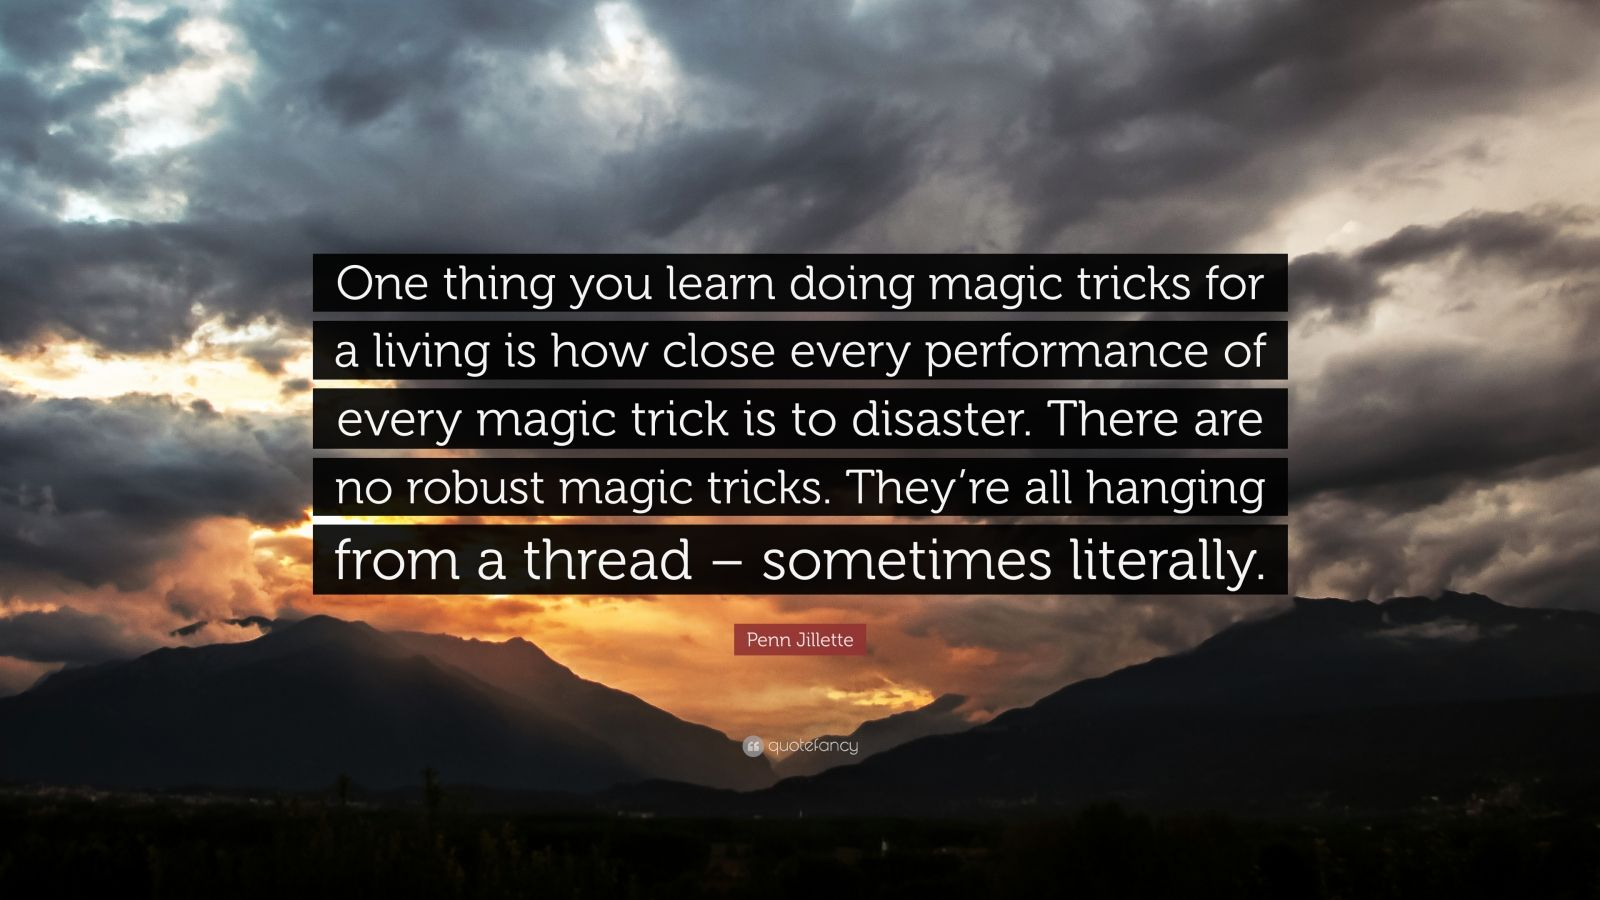 """Penn Jillette Quote: """"One thing you learn doing magic tricks for a living is how close every performance of every magic trick is to disaster. There are no robust magic tricks. They're all hanging from a thread – sometimes literally."""""""